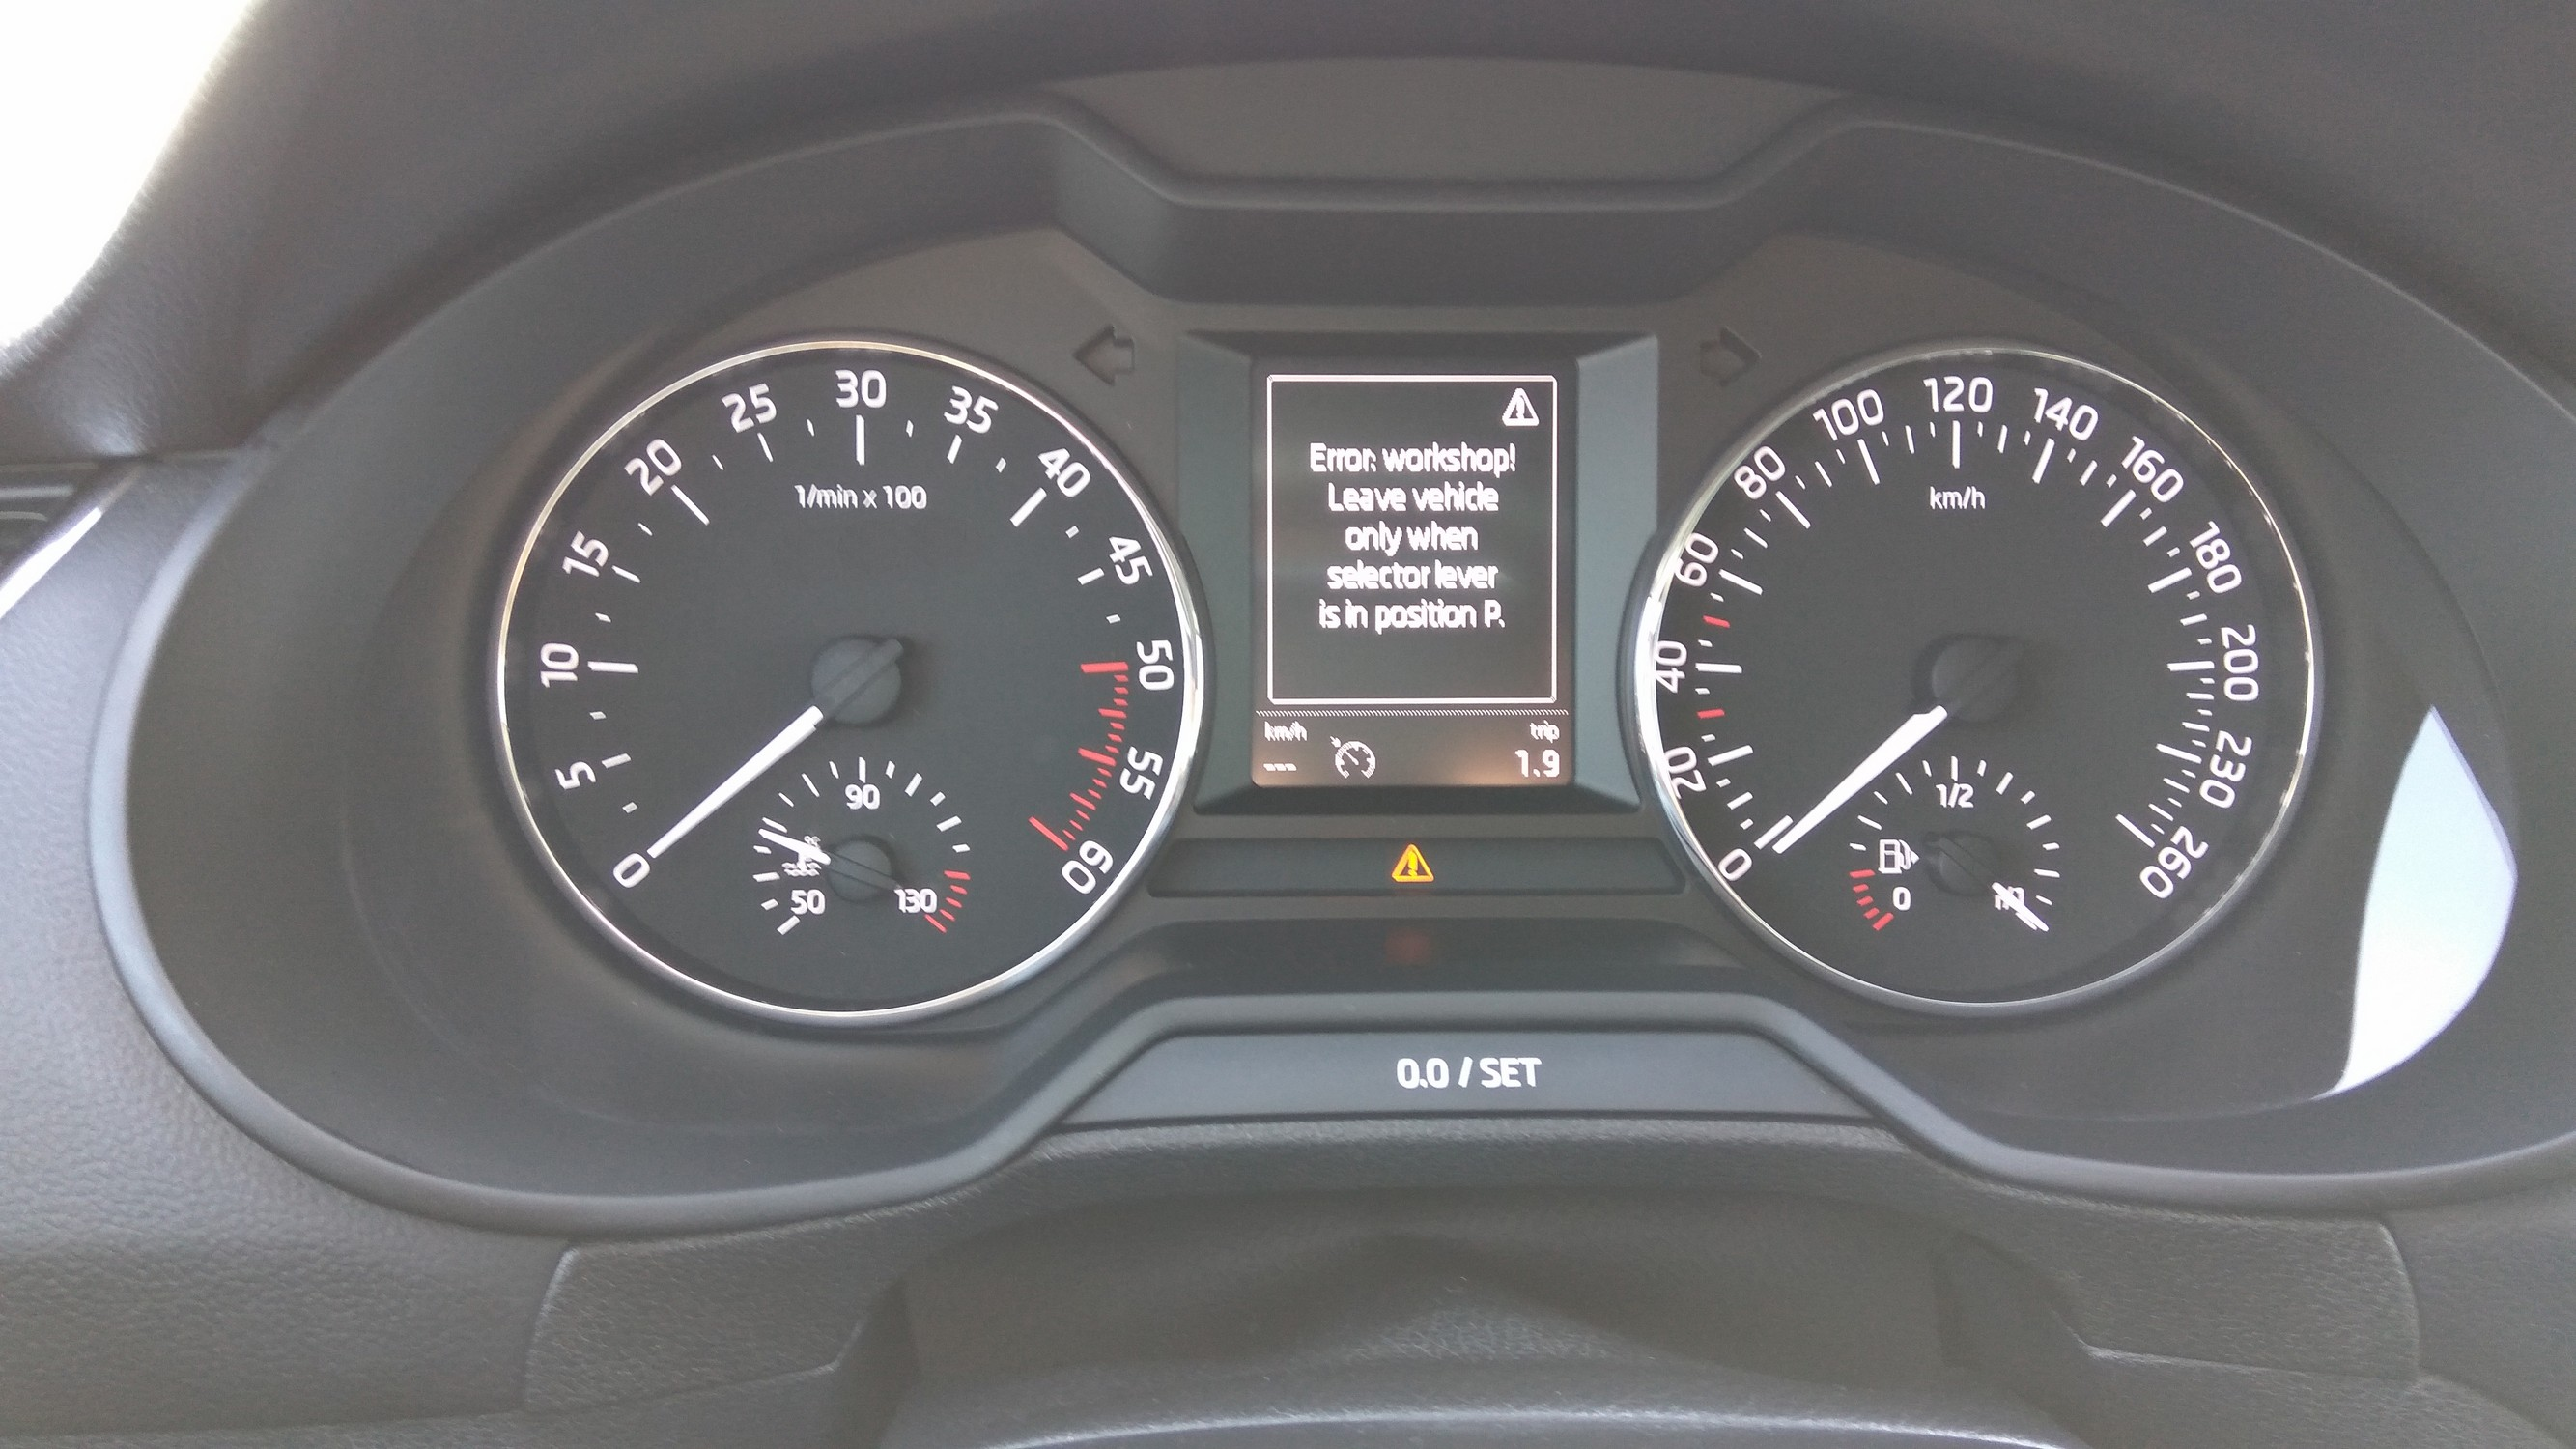 Error service: leave vehicle only when selector in position p